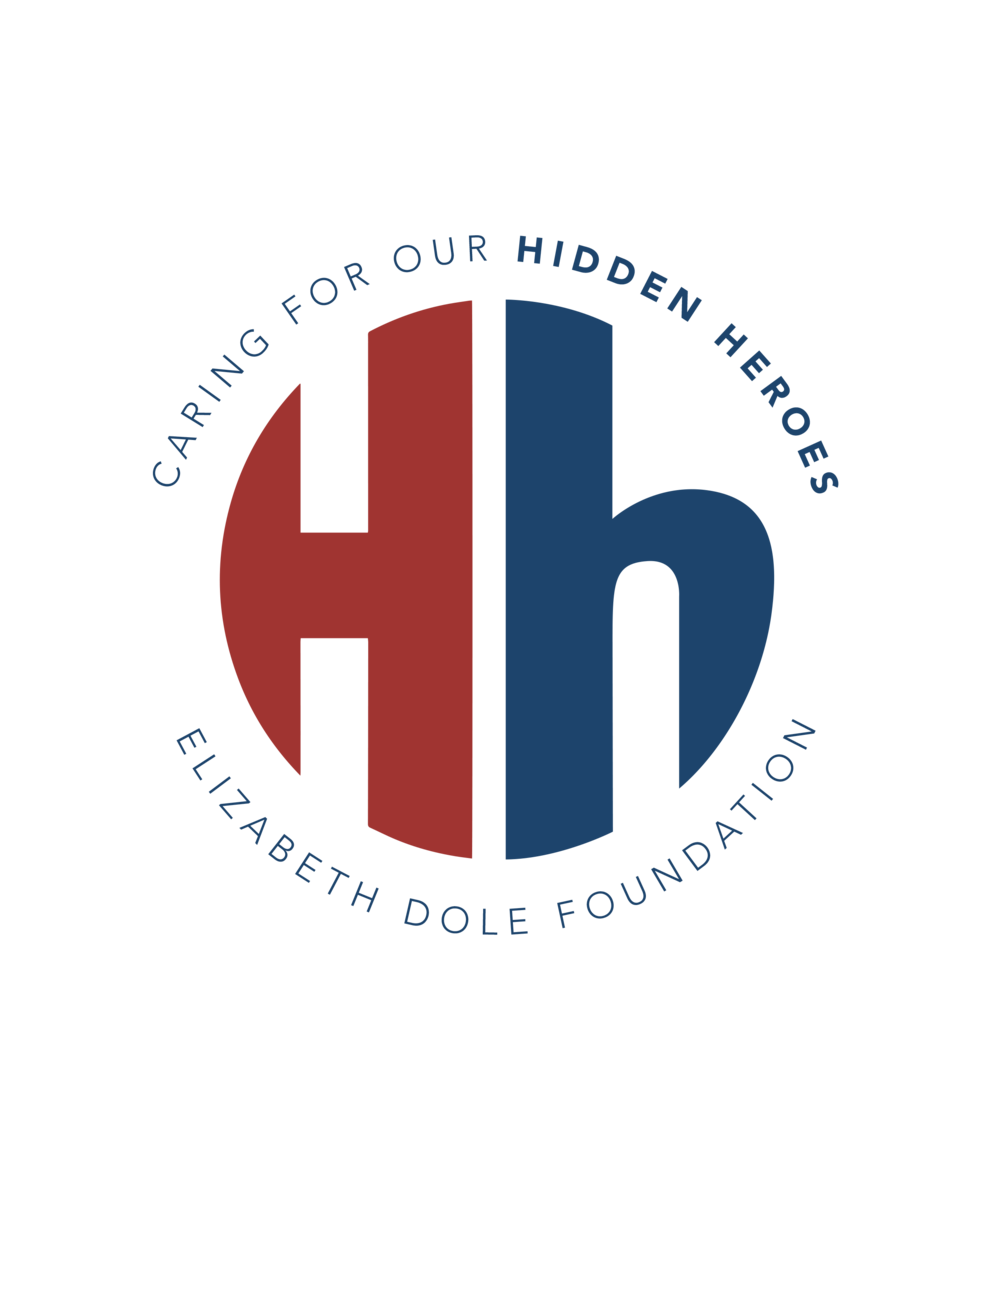 Hidden Heroes - Hidden Heroes is a multi-year, multi-faceted campaign that brings vital attention to the untold stories of military caregivers and seeks solutions for the tremendous challenges and long-term needs they face.